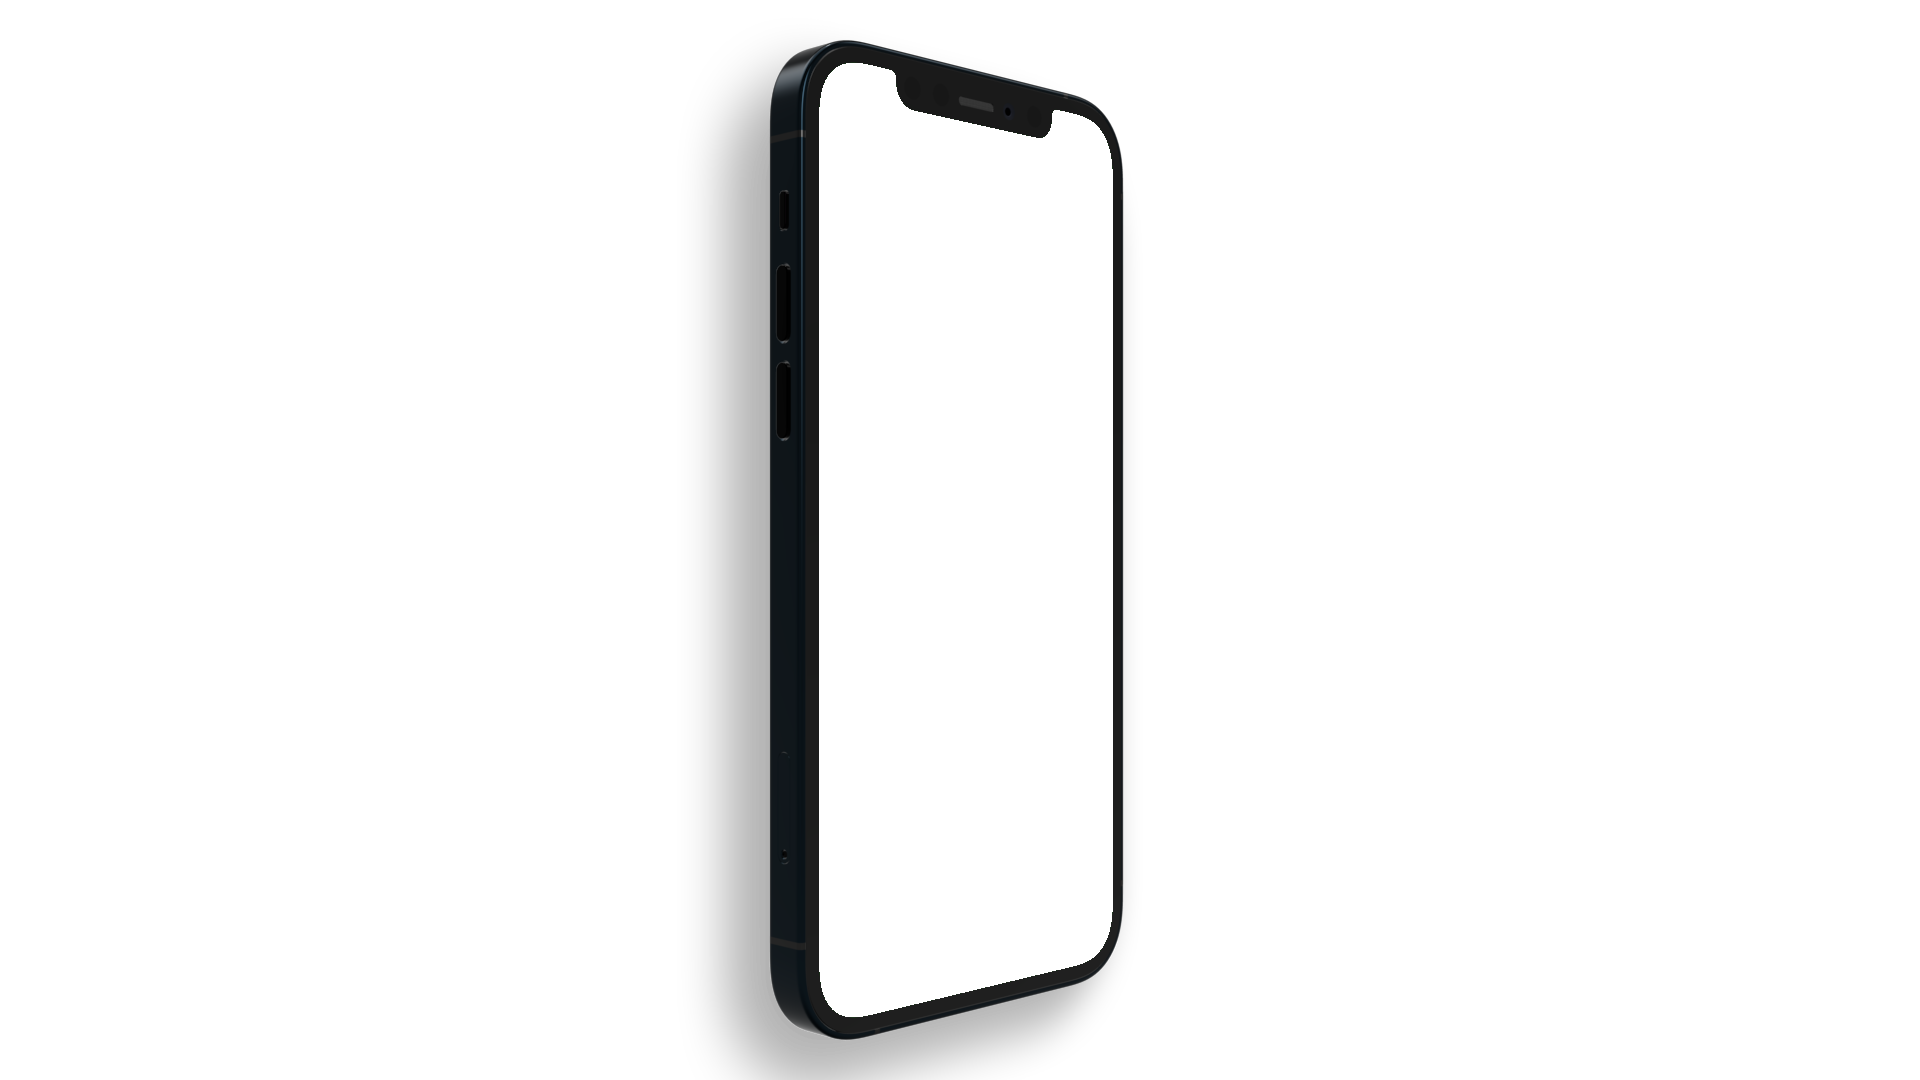 iPhone PNG seen from the side, upright position